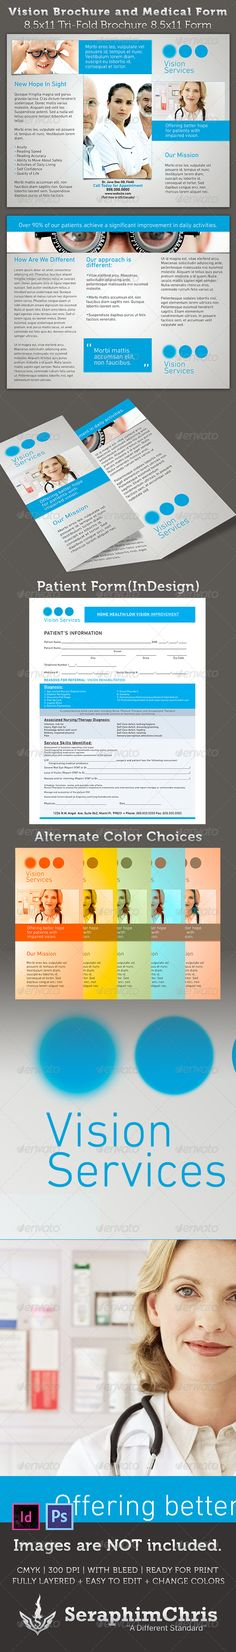 Vision Brochure and Medical Form Template - $8.00